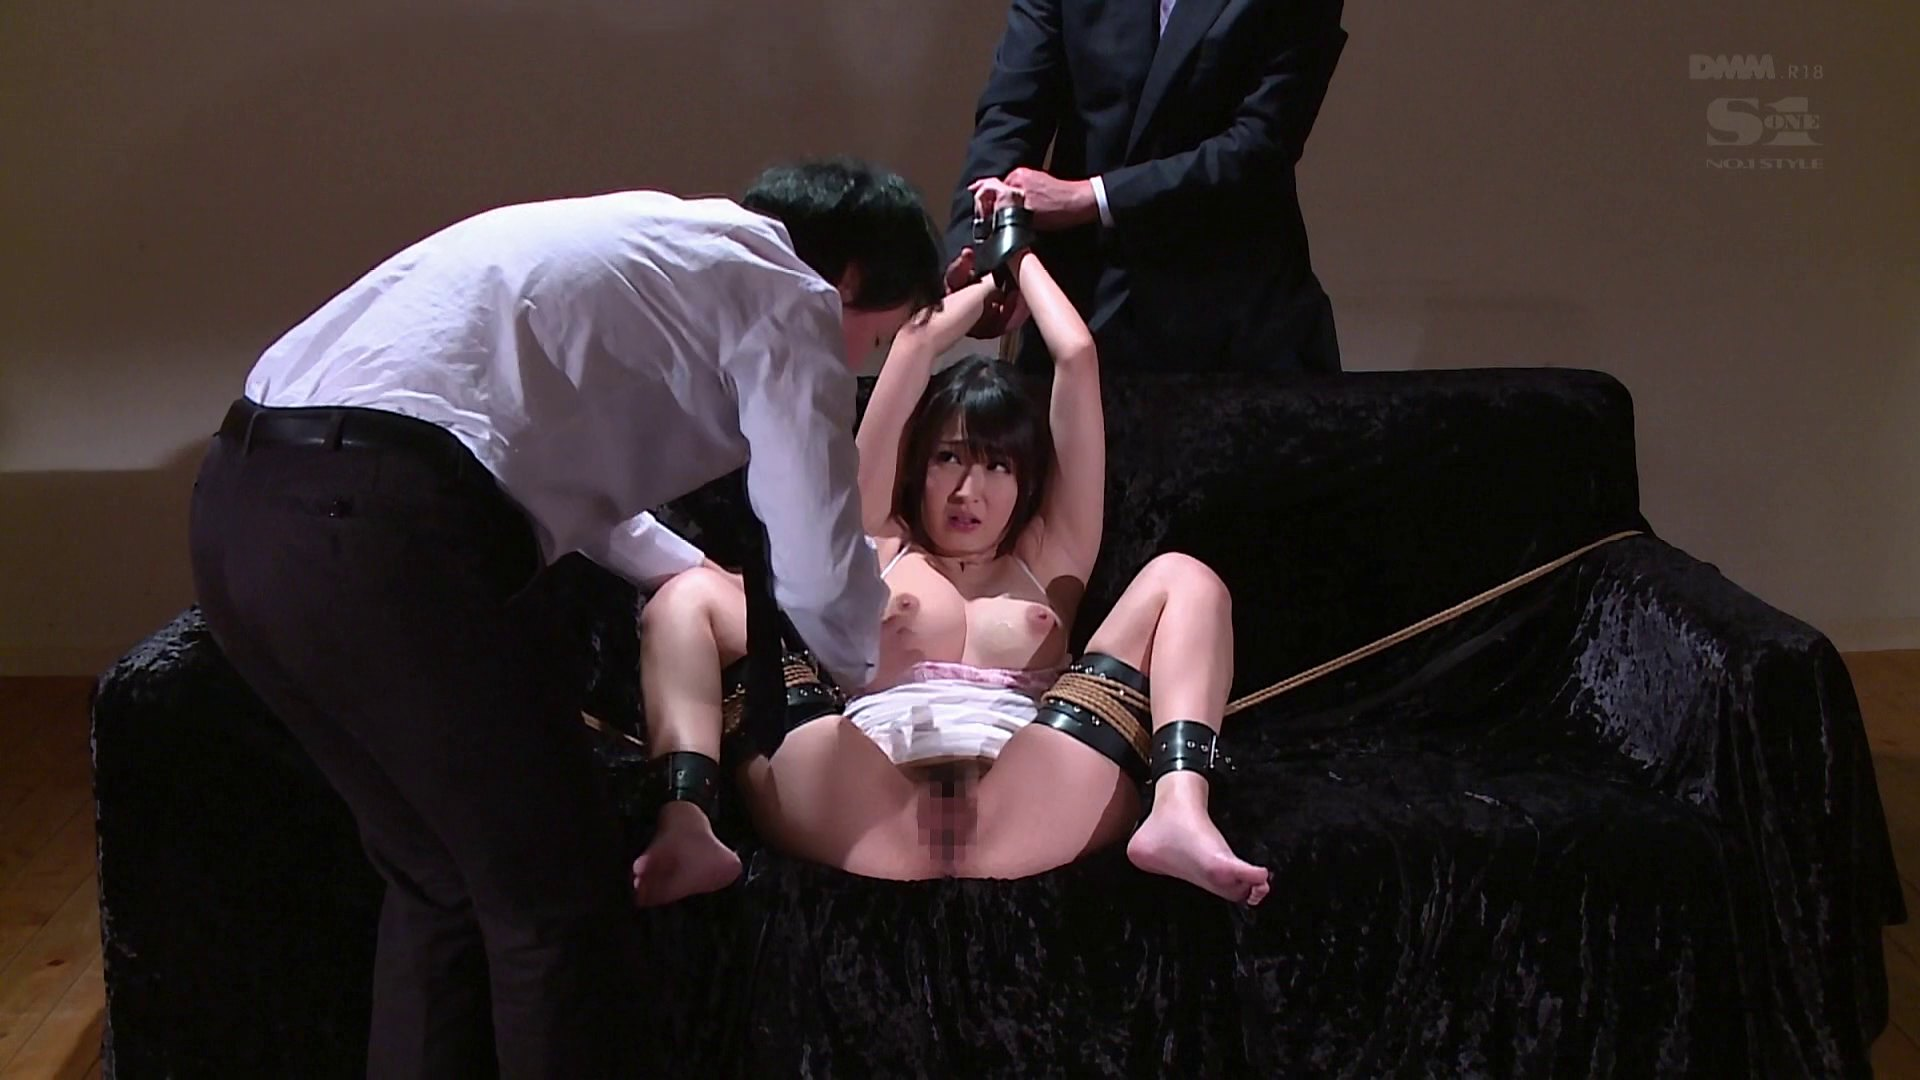 dlinnoe-bdsm-video-bondazh